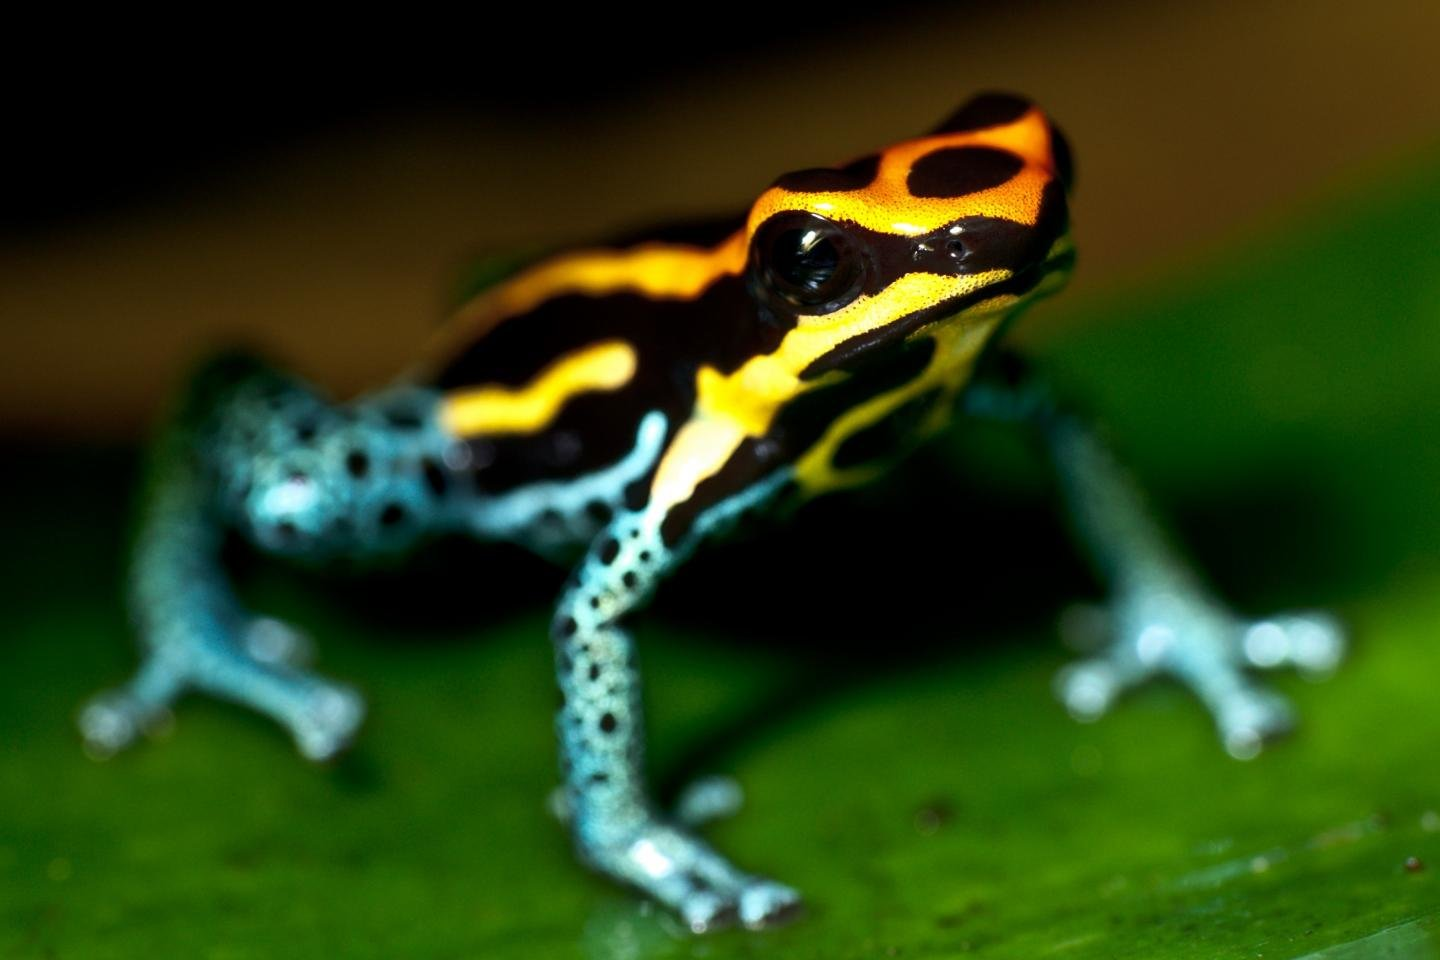 Awesome Poison Dart Frog free wallpaper ID:253496 for hd 1440x960 desktop